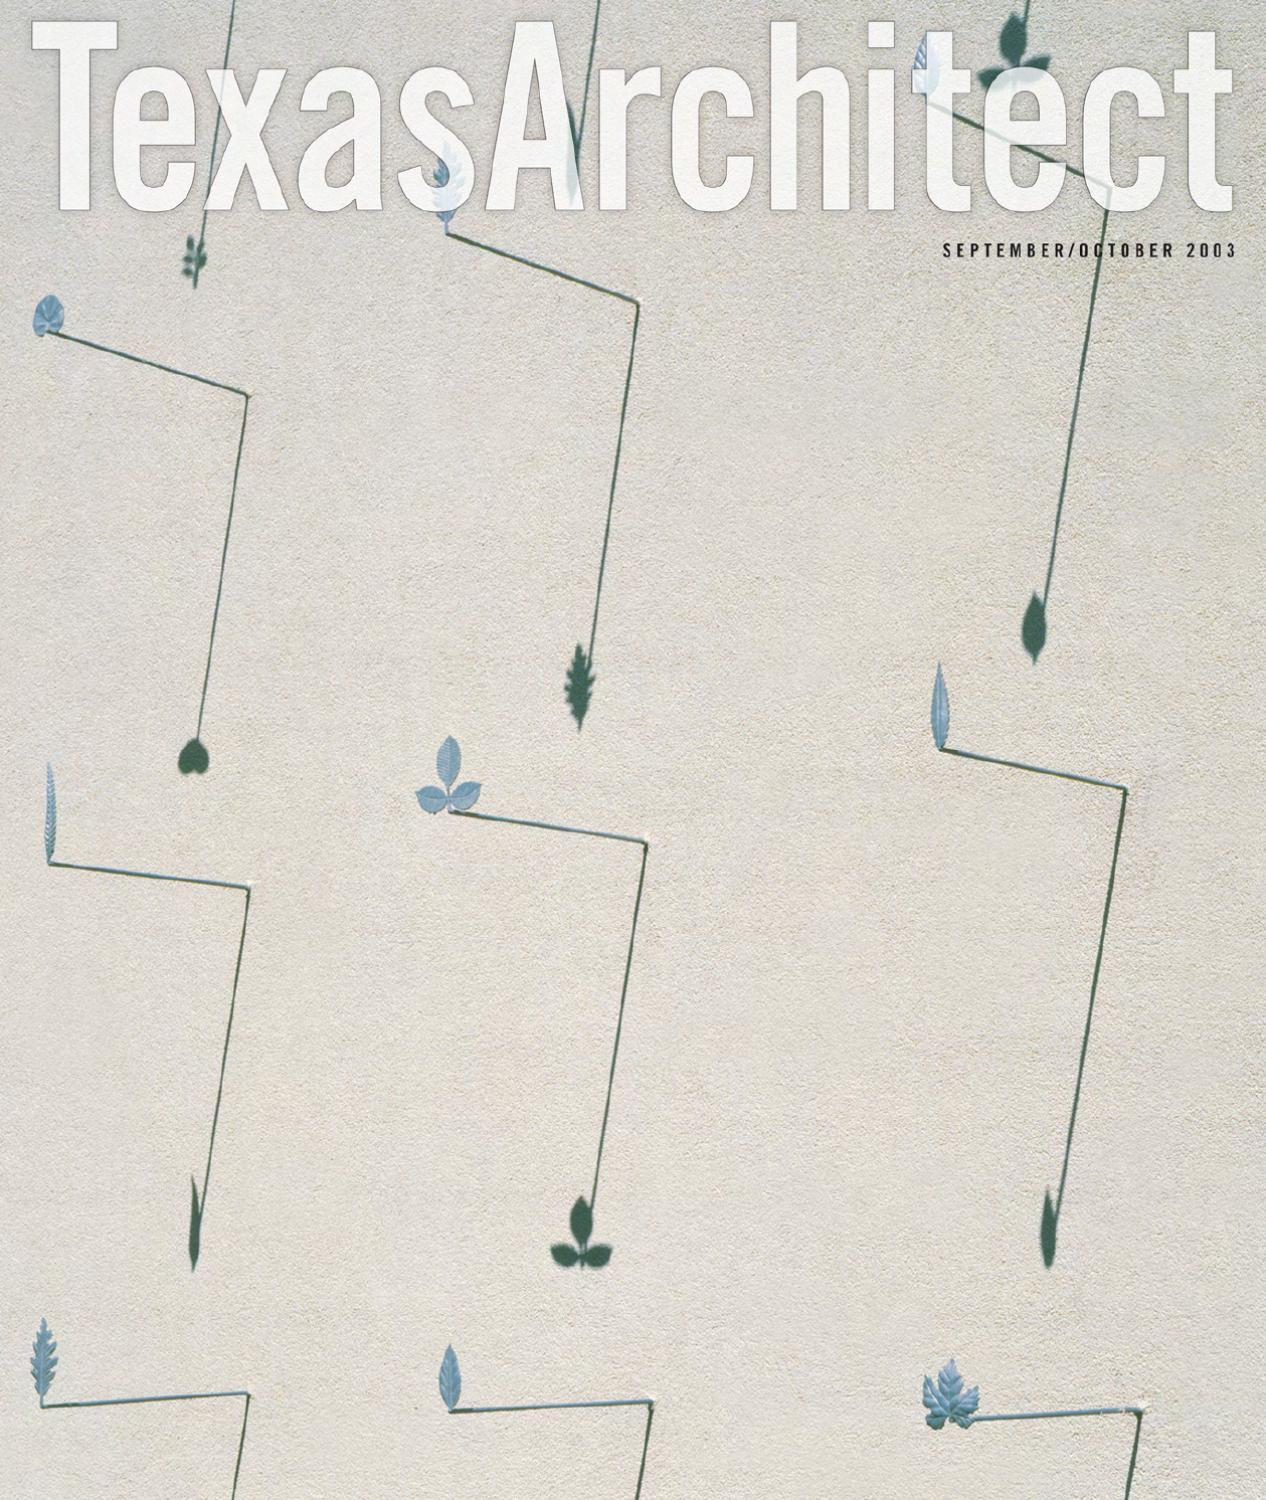 Texas Architect Sept/Oct 2003: Design Awards by Texas